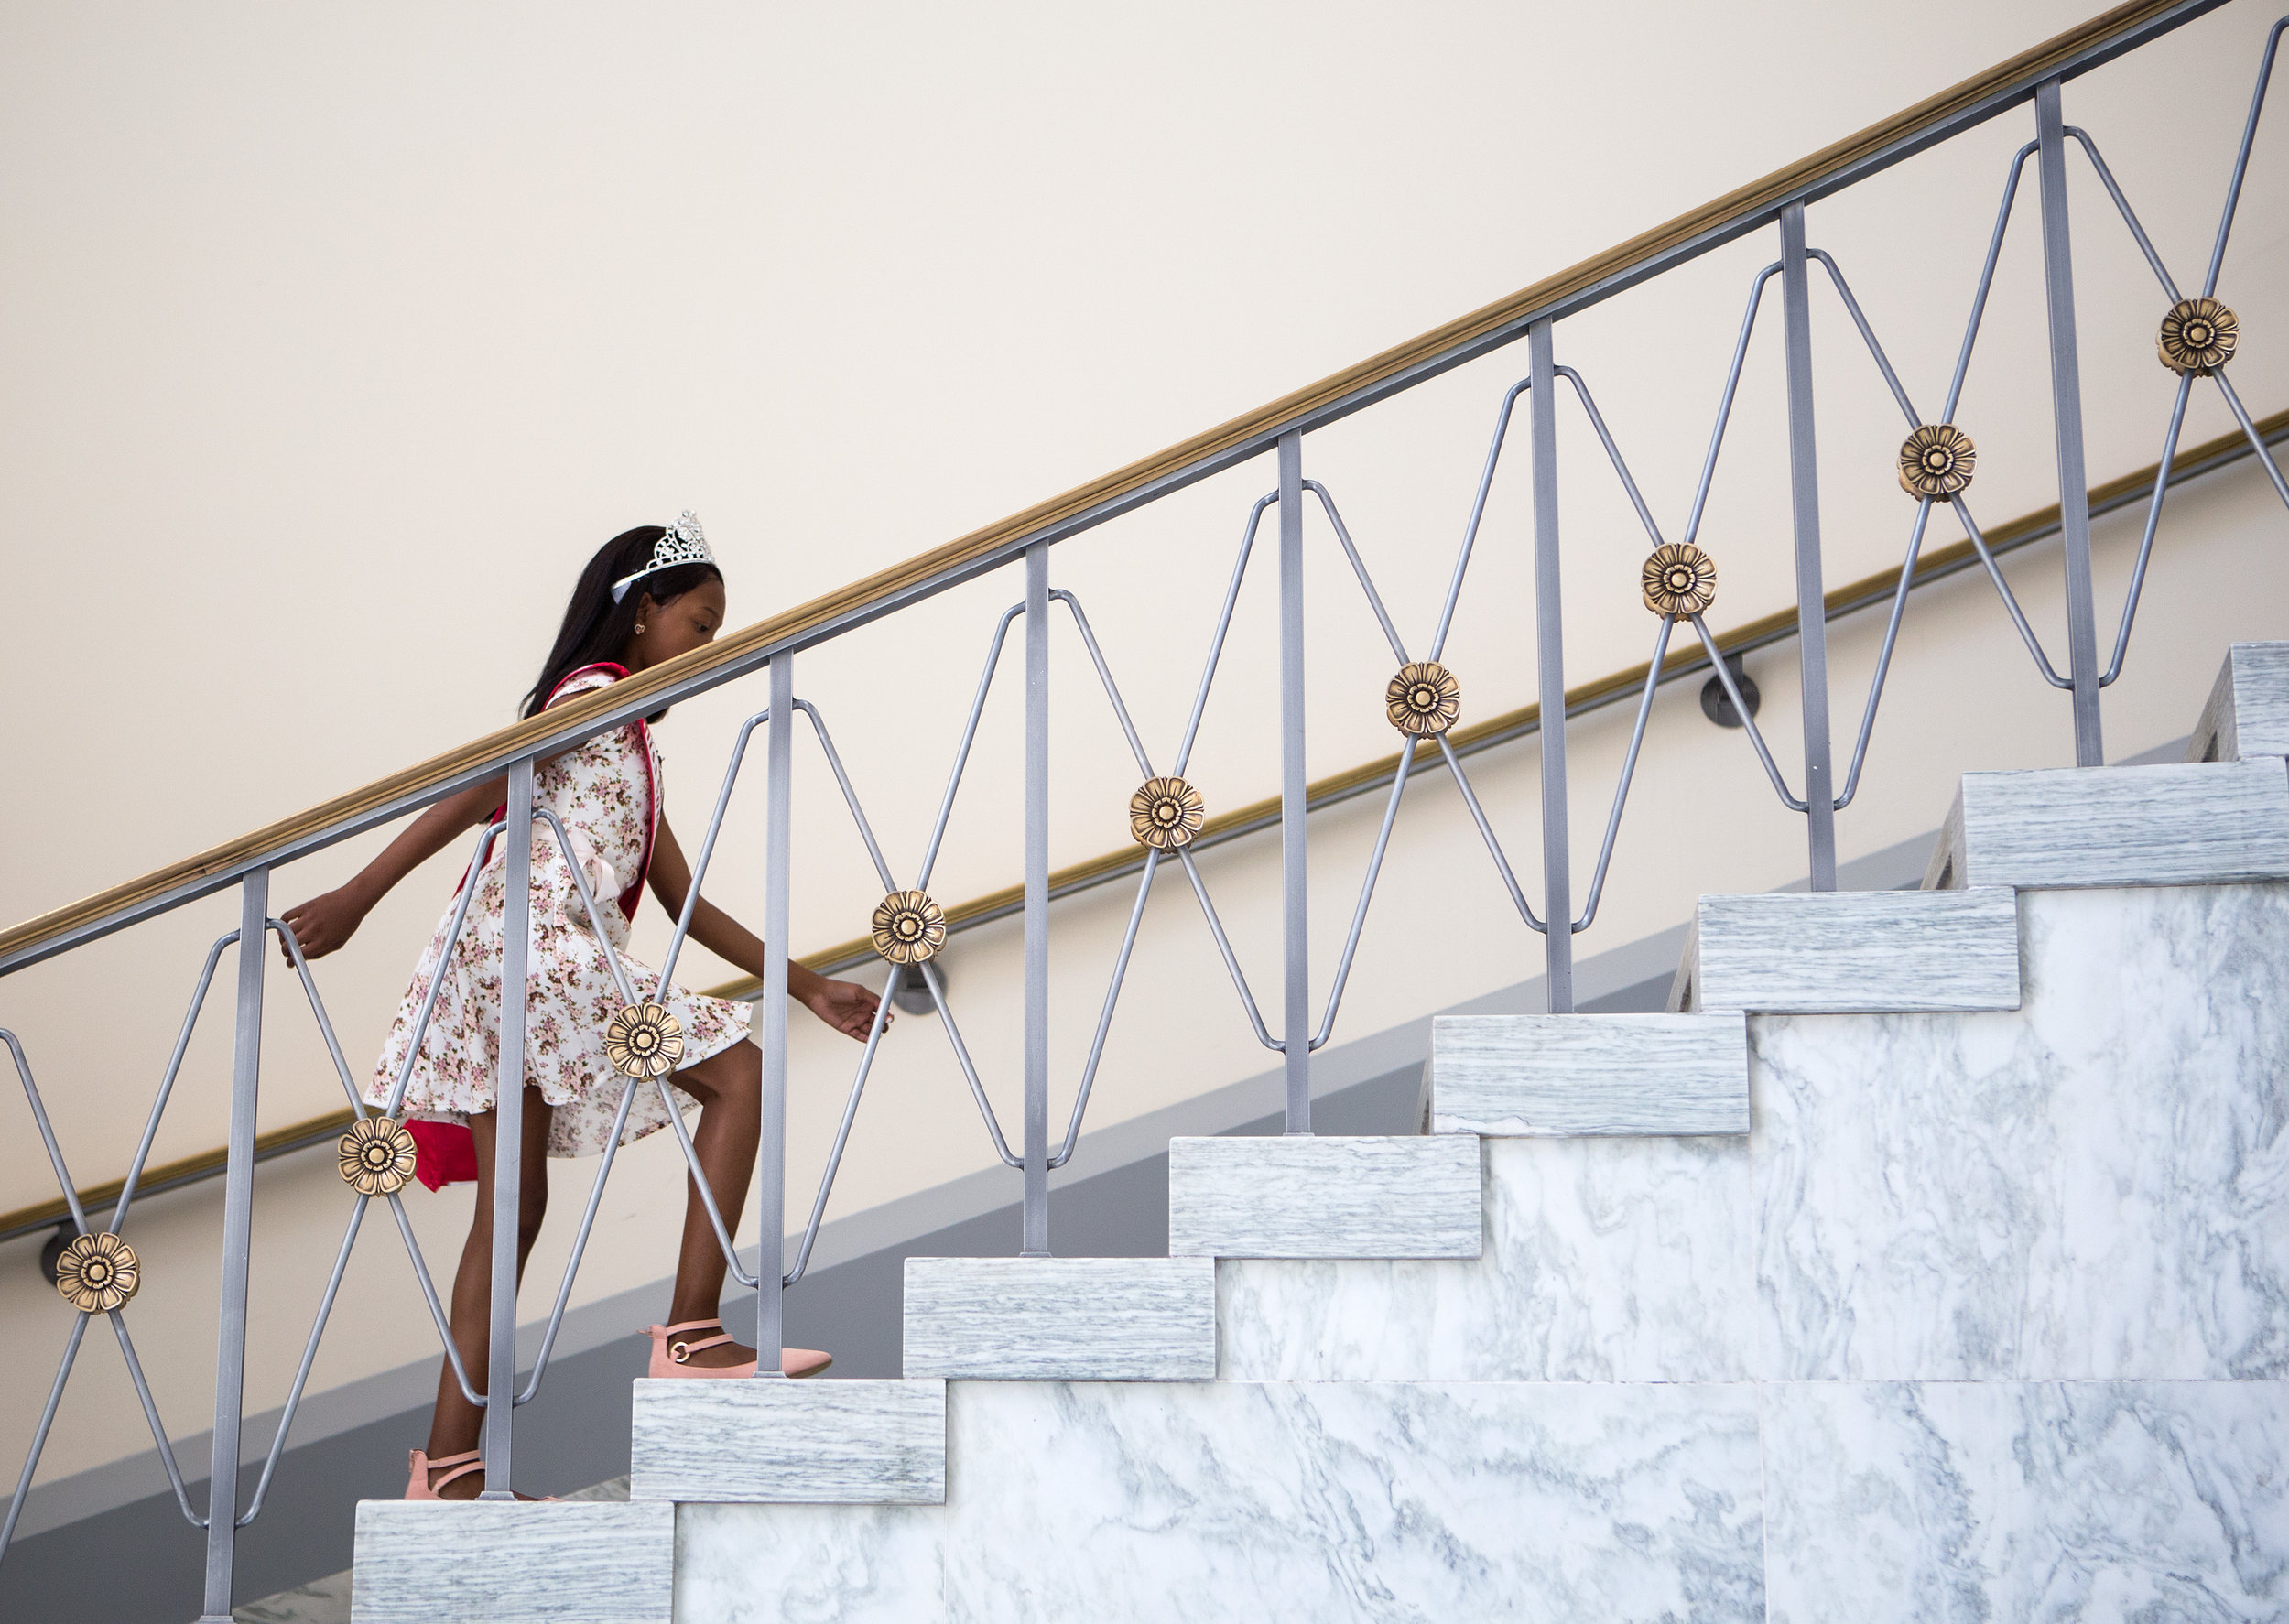 Tymia takes the stairs in the Rayburn House Office Building on her way to meet with Sanford. By the end of the day, she was using a wheelchair. (Liam James Doyle/NPR)